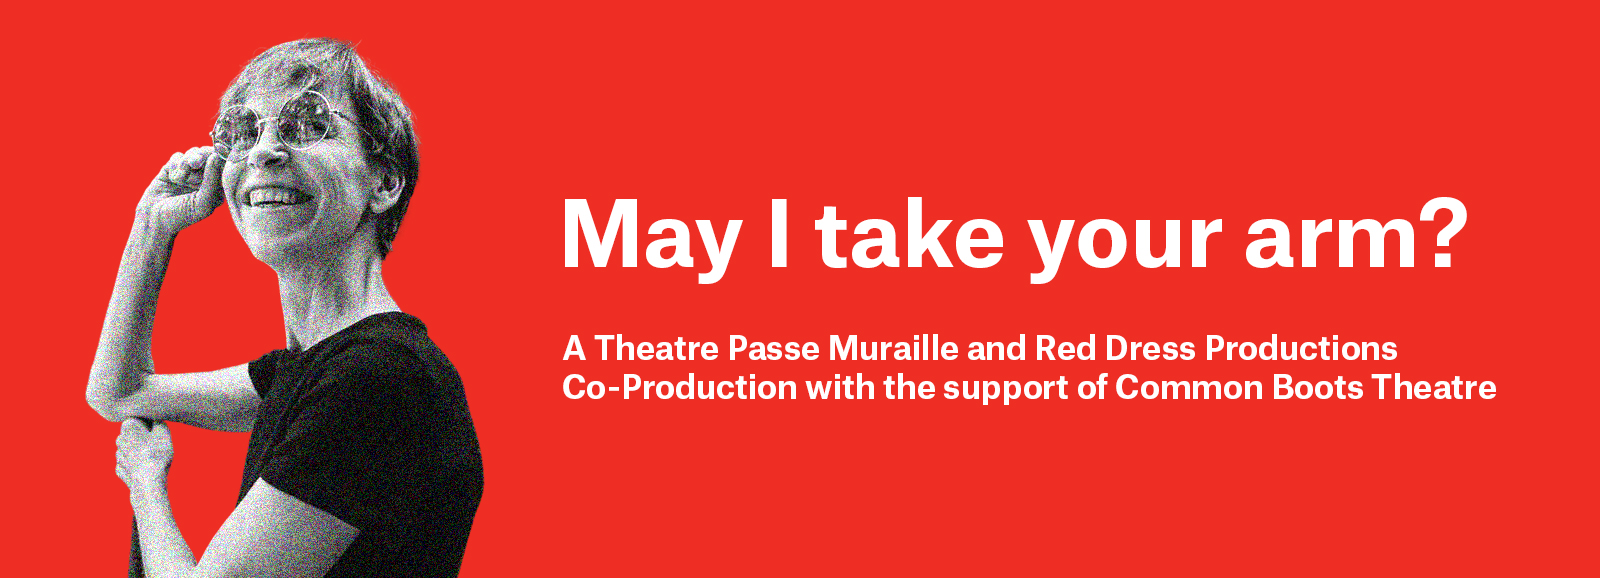 May I take your arm? A Theatre PAsse Muraille and REd Dress Productiosn Co-Productions with teh support of Common Boots Theatre. Red banned with white text and greyscale image of Alex.